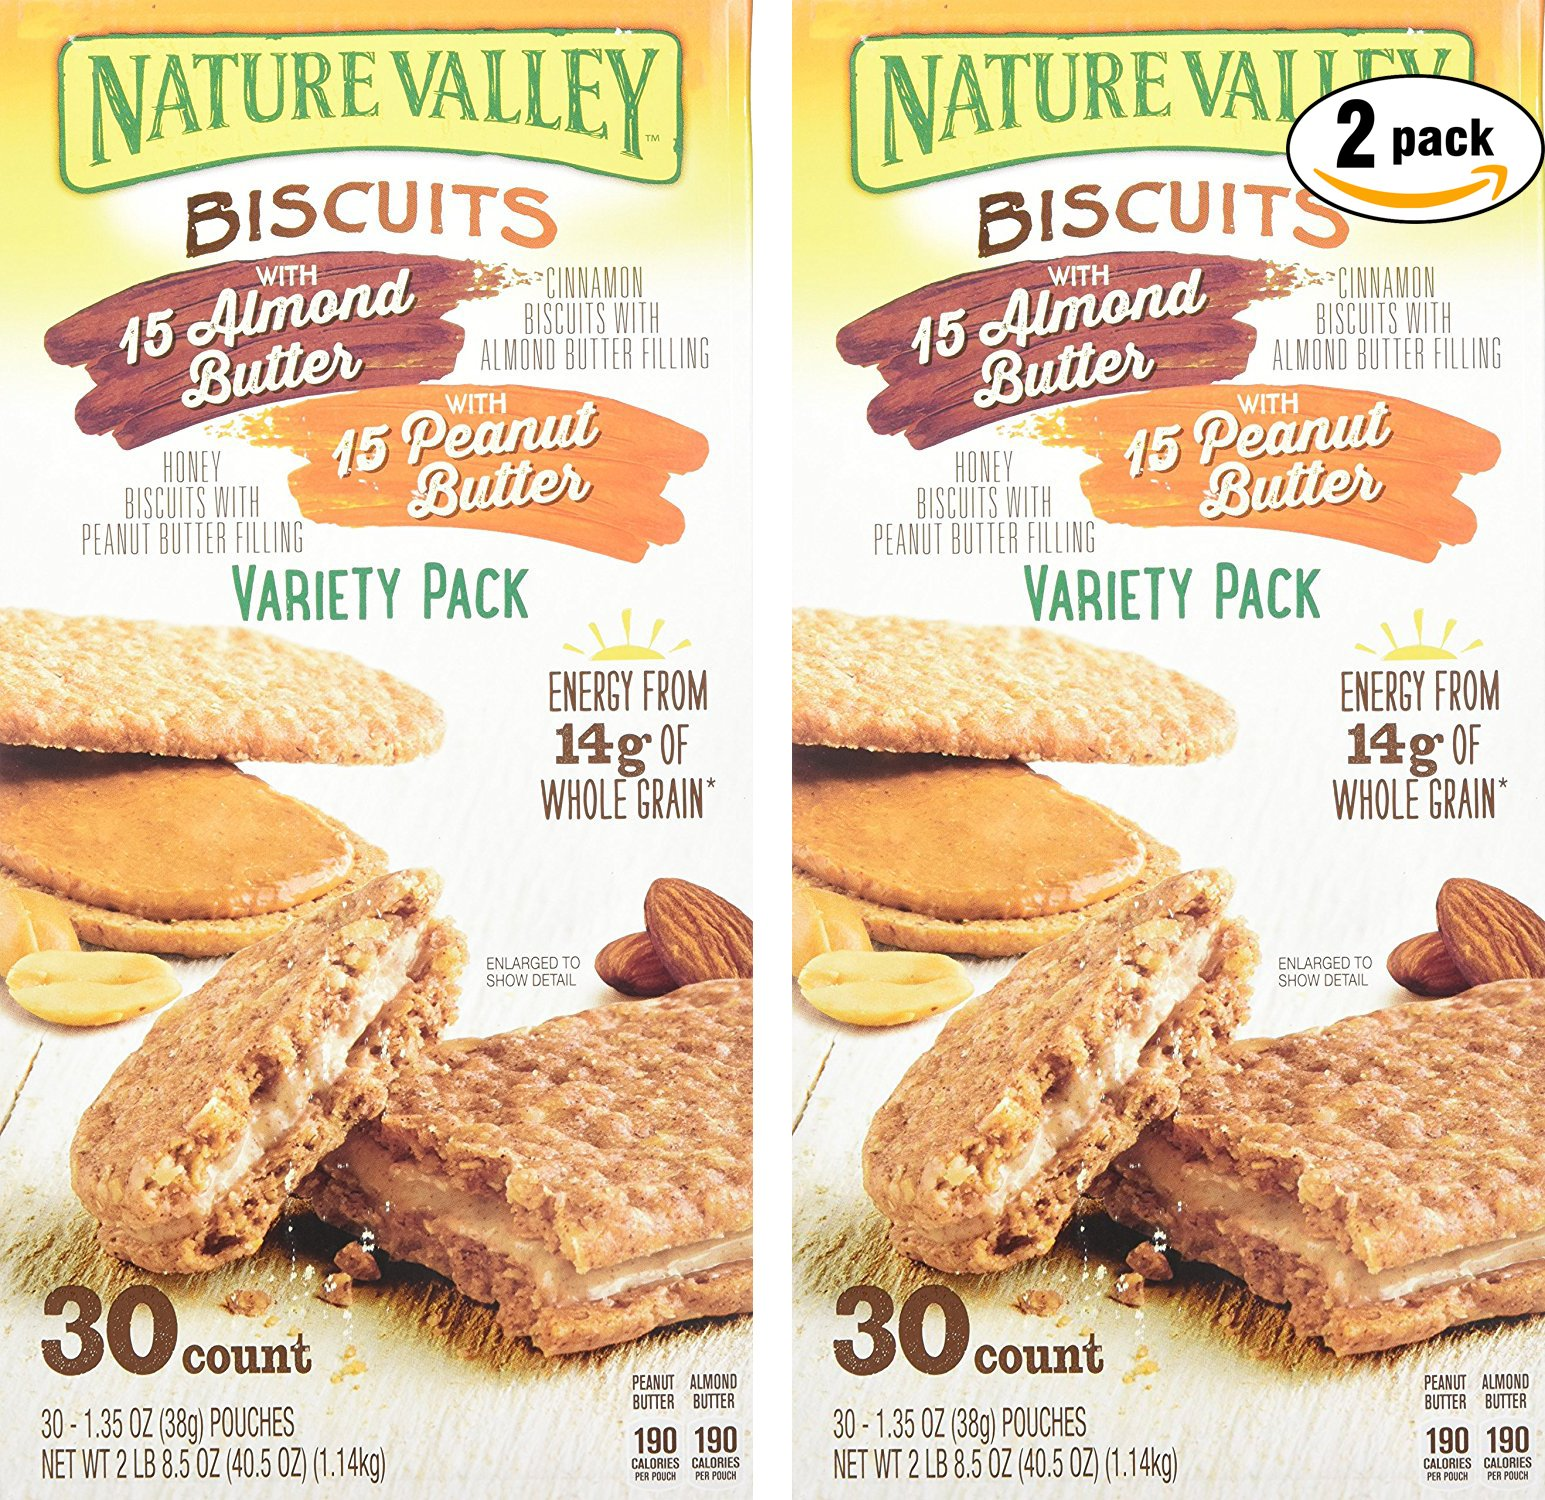 Nature Valley Sandwich Biscuit with Almond Butter or Peanut Butter, Variety Pack, 30 Count (Pack of 2, Total of 60 Ct) by Nature Valley